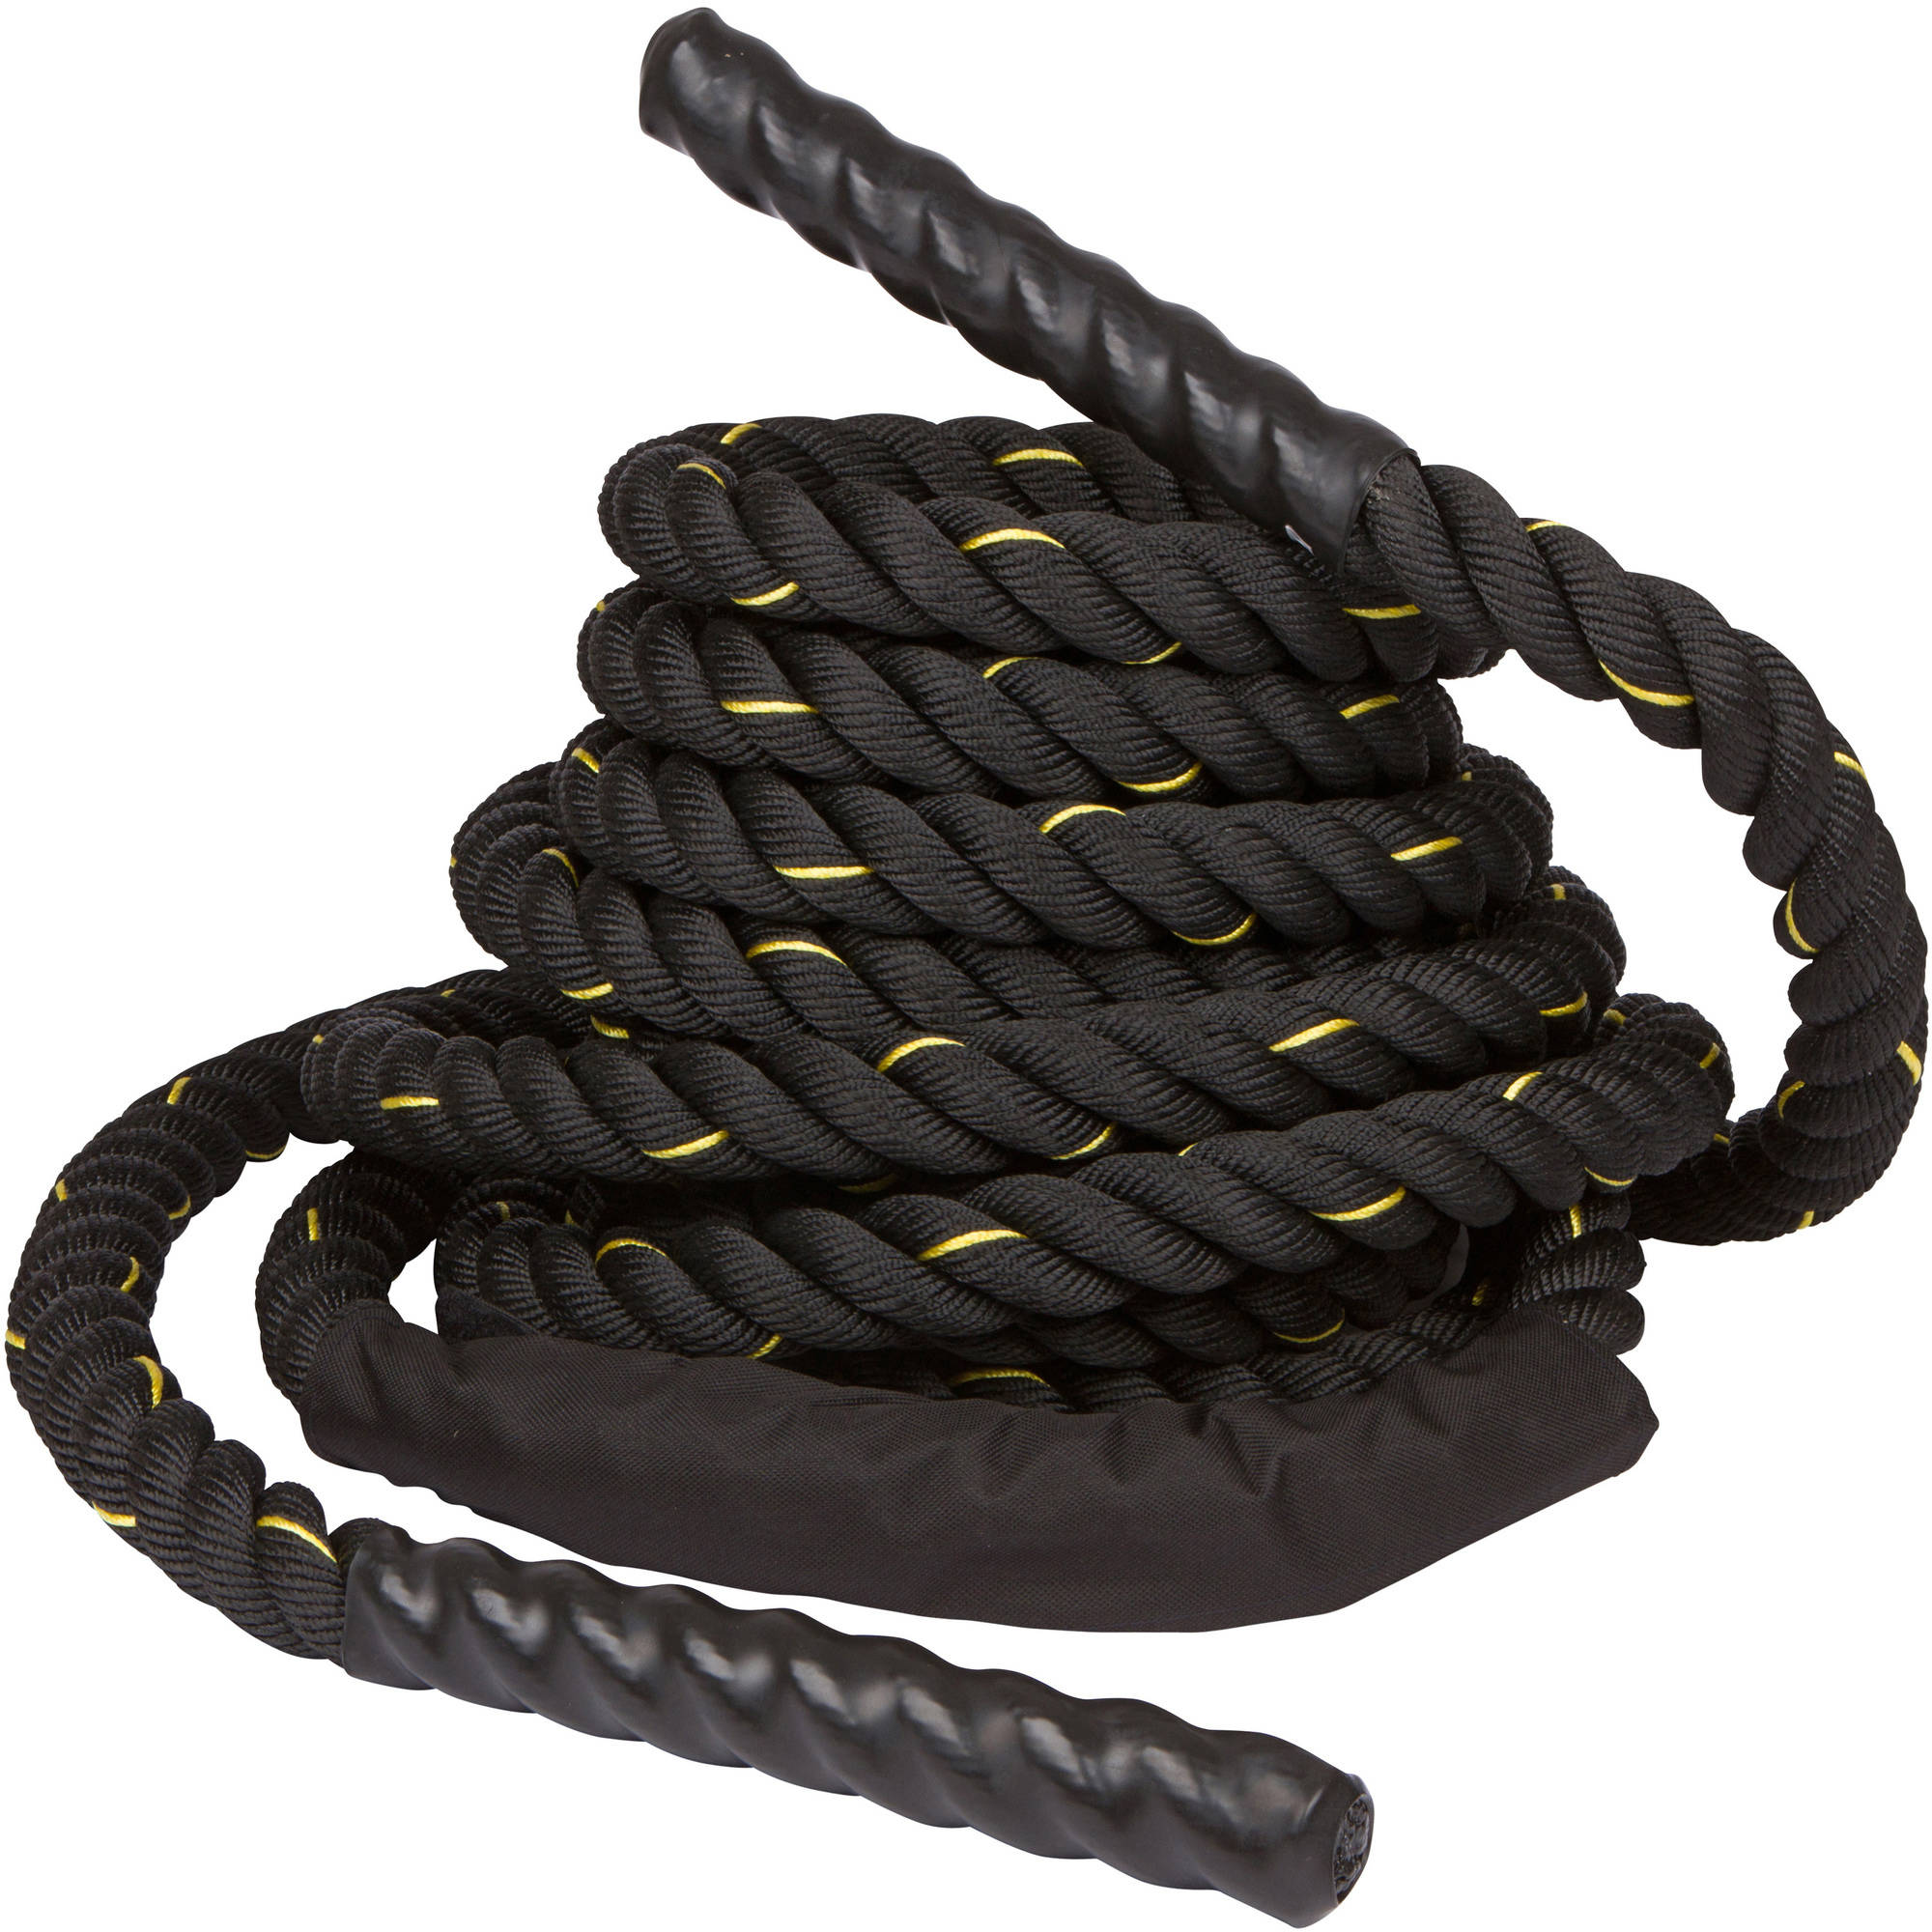 "Trademark Innovations Battle Rope, Strength and Core Training, 1.5"" Thick, 40'"